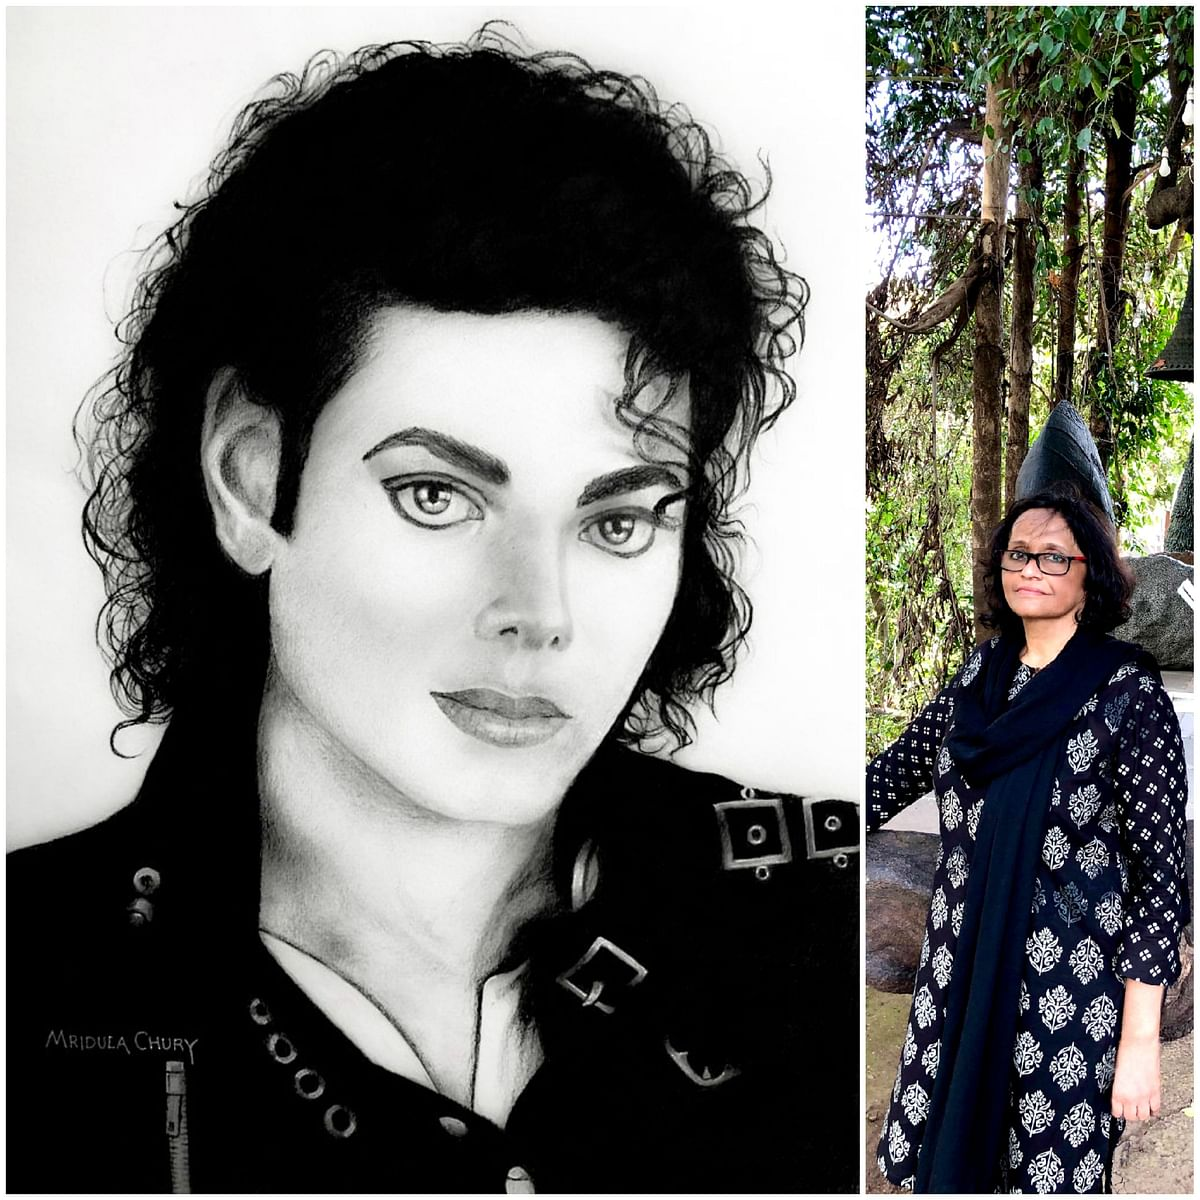 Mridula Chury's charcoal tribute to King of Pop Michael Jackson on his birth anniversary